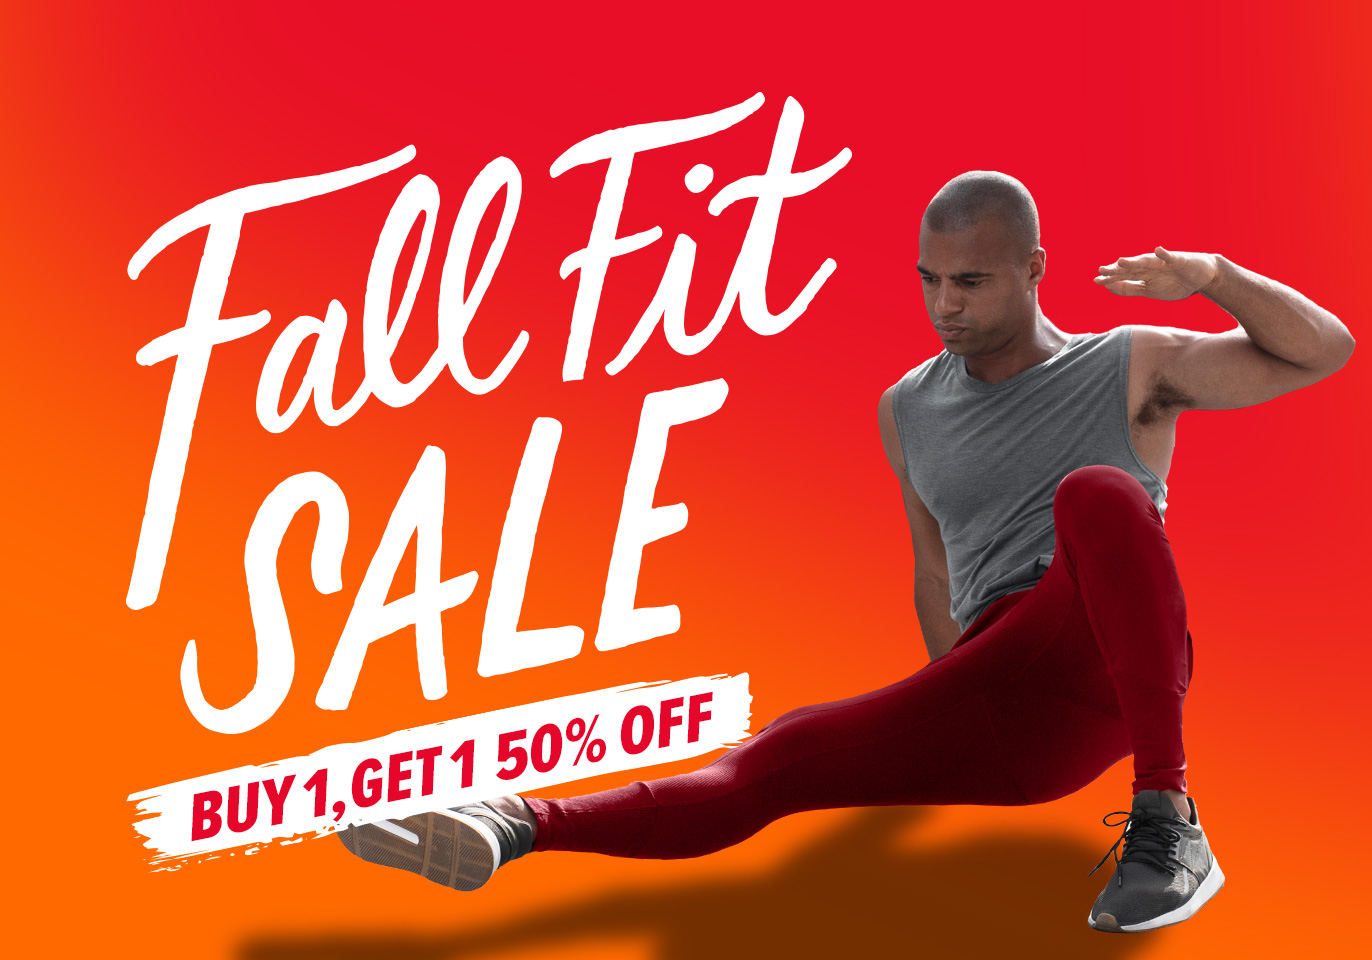 Buy 1, Get 1 50% Off! Maintaining your fall goals is easy with can't-miss deals on your favorite proteins, weight management products and more thru 11/3*